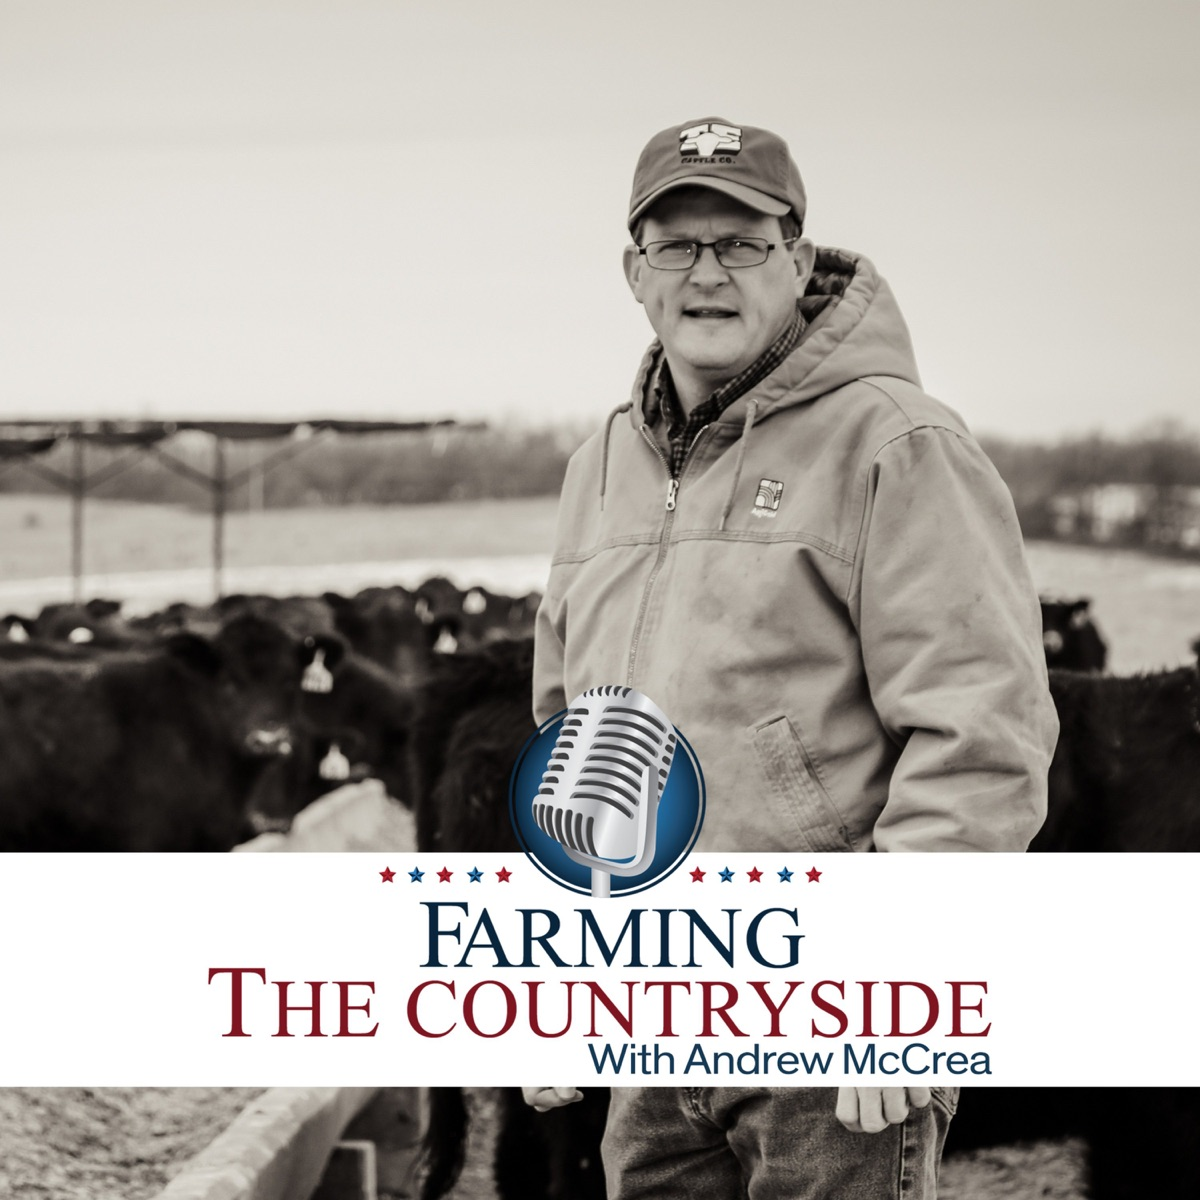 Farming the Countryside with Andrew McCrea